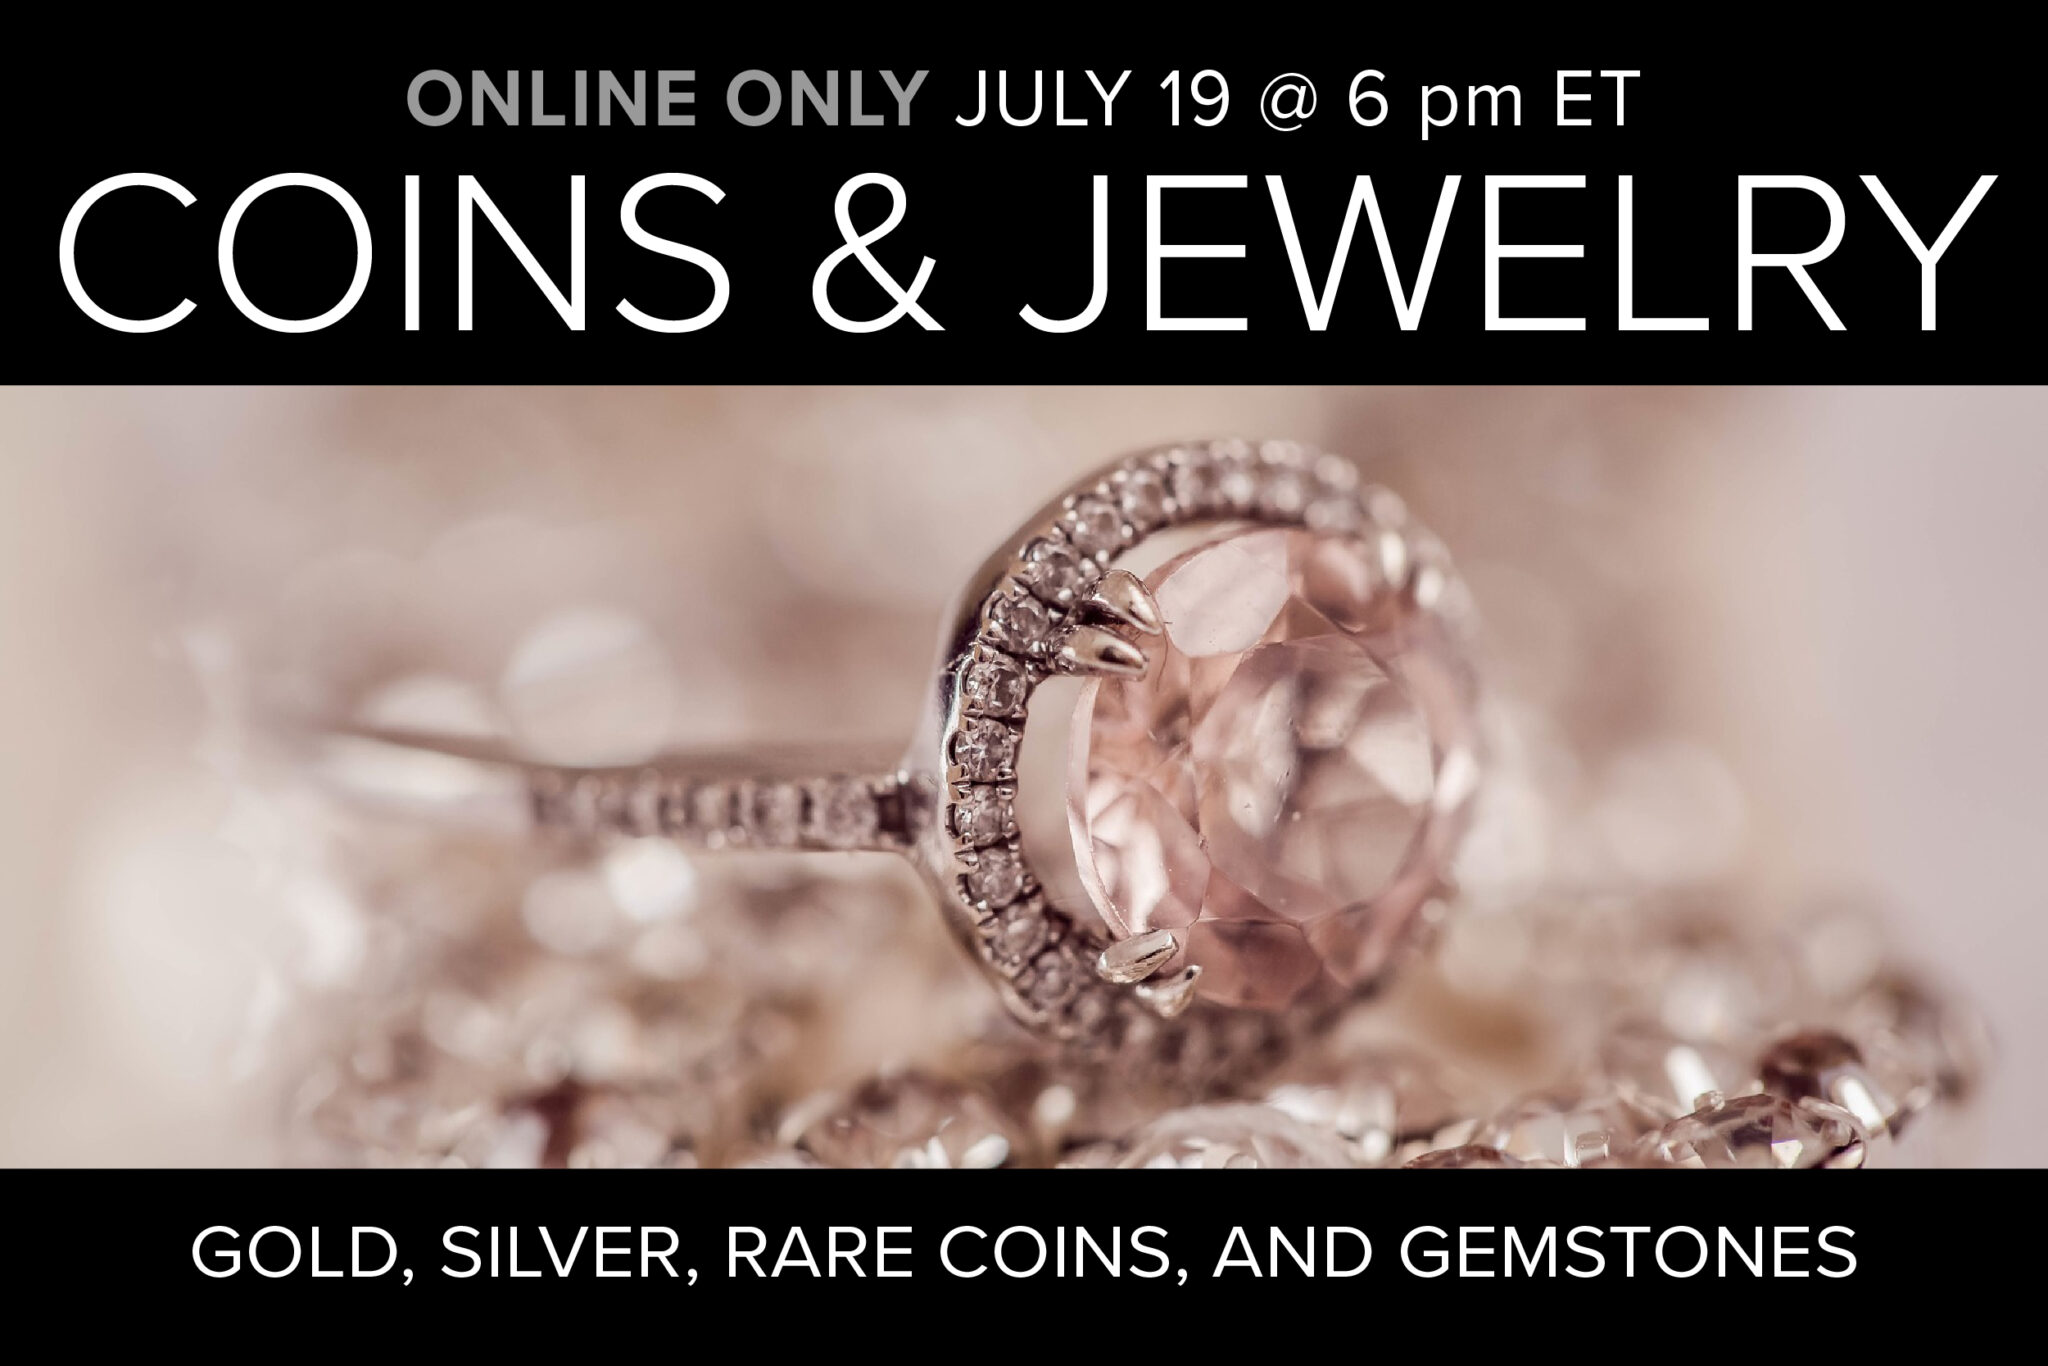 Coins and Jewelry Auction Online Only Auction on July 19 at 6pm